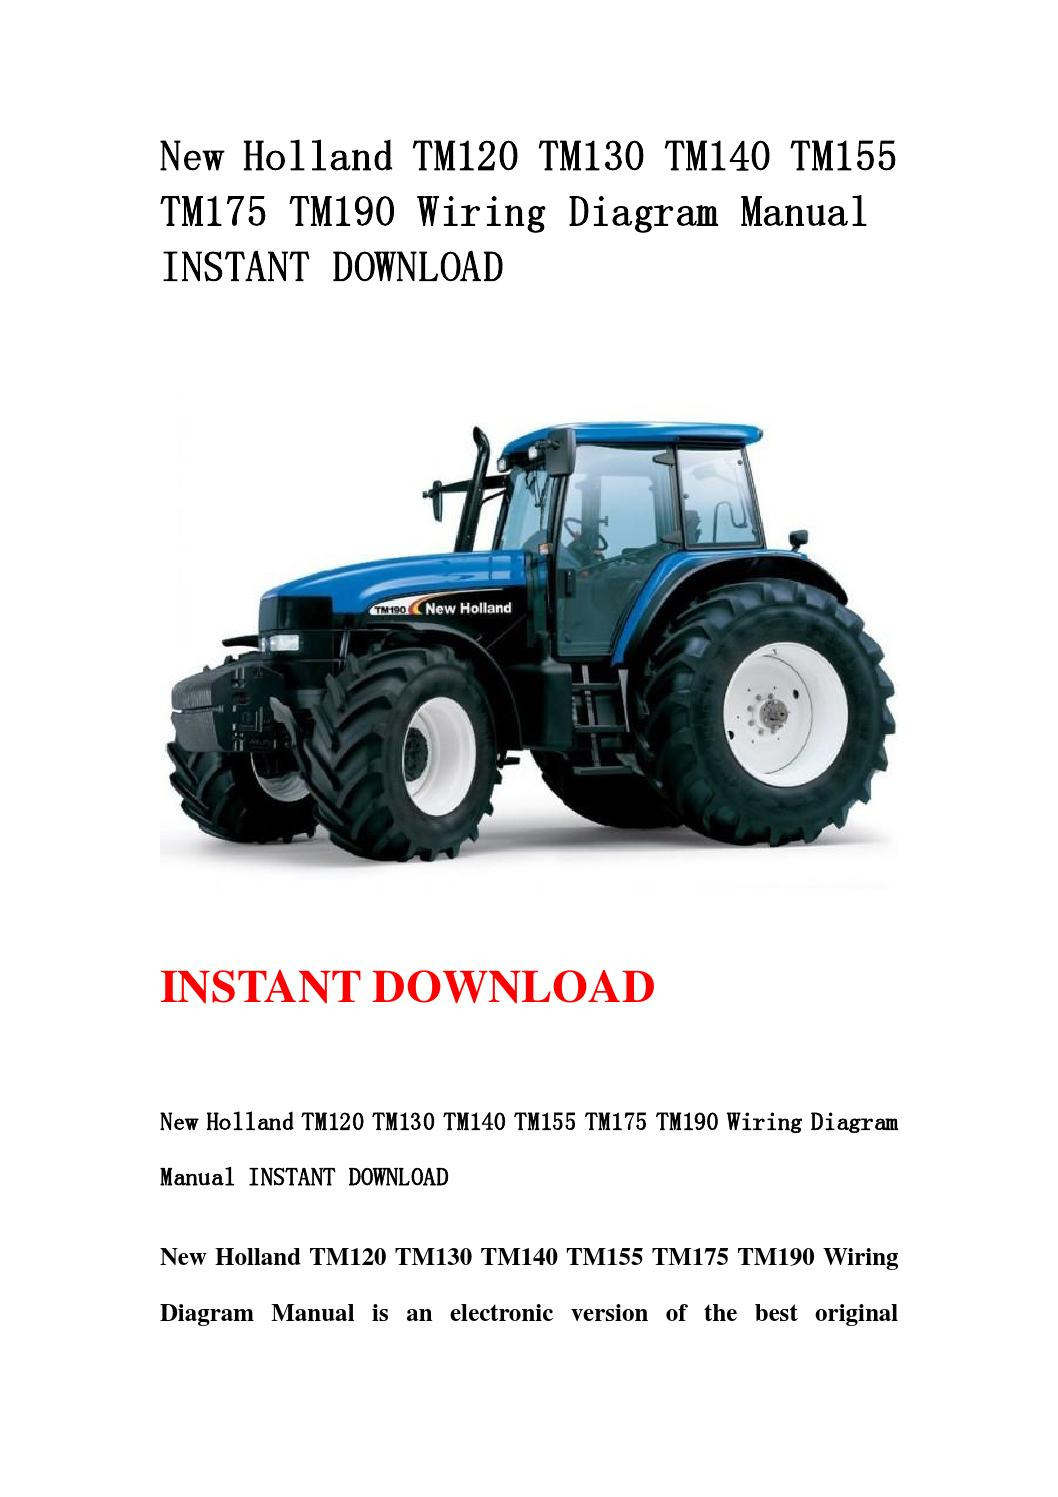 new holland tm120 tm130 tm140 tm155 tm175 tm190 wiring diagram new holland tm120 tm130 tm140 tm155 tm175 tm190 wiring diagram manual instant by hytggse issuu